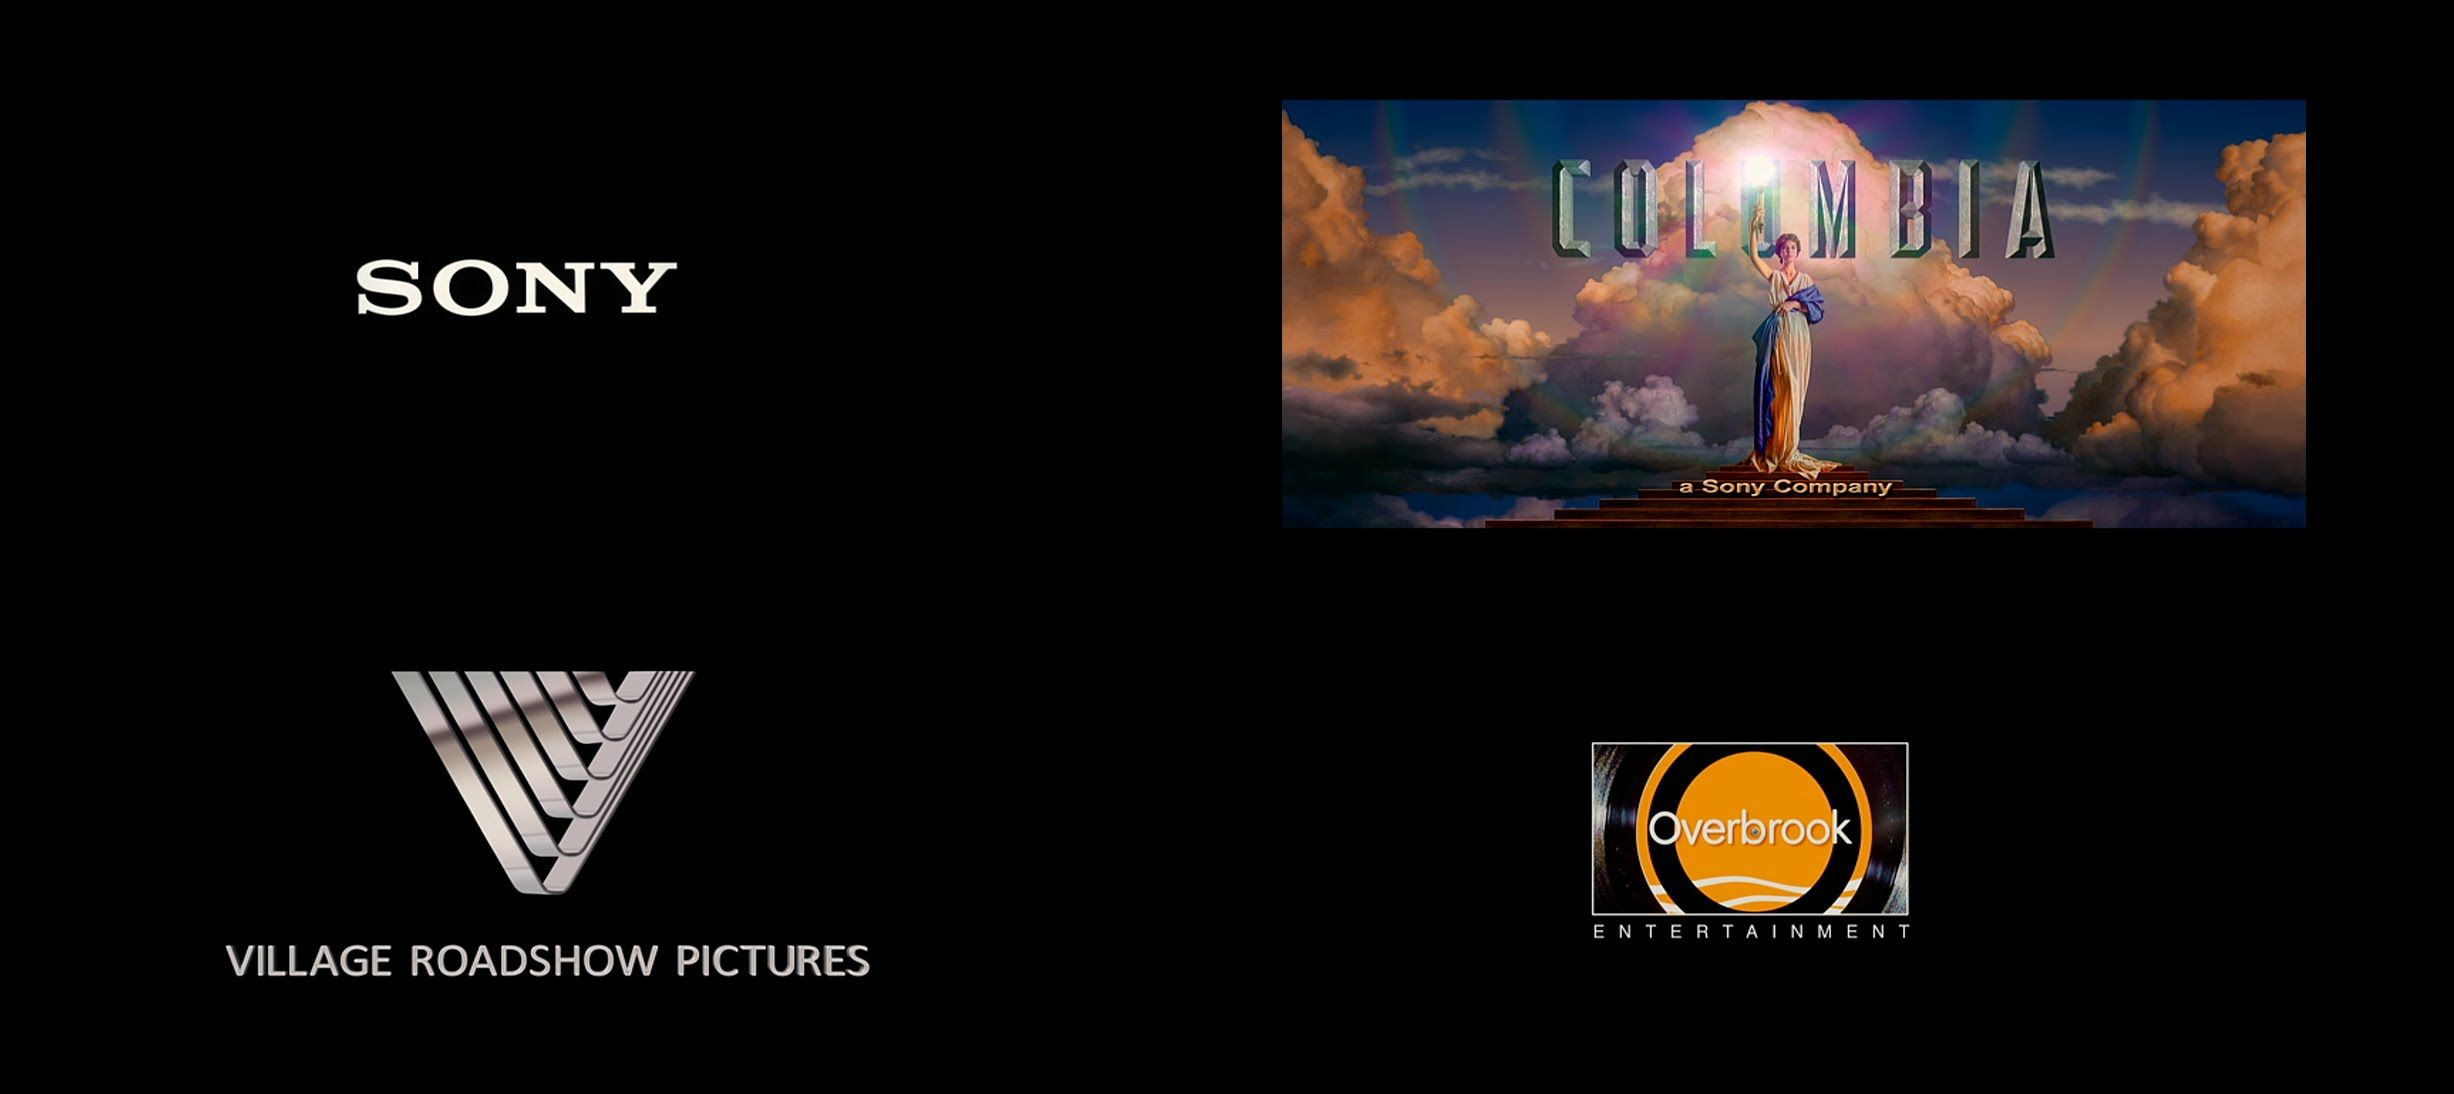 Sony/Columbia Pictures/Village Roadshow Pictures/Overbrook.